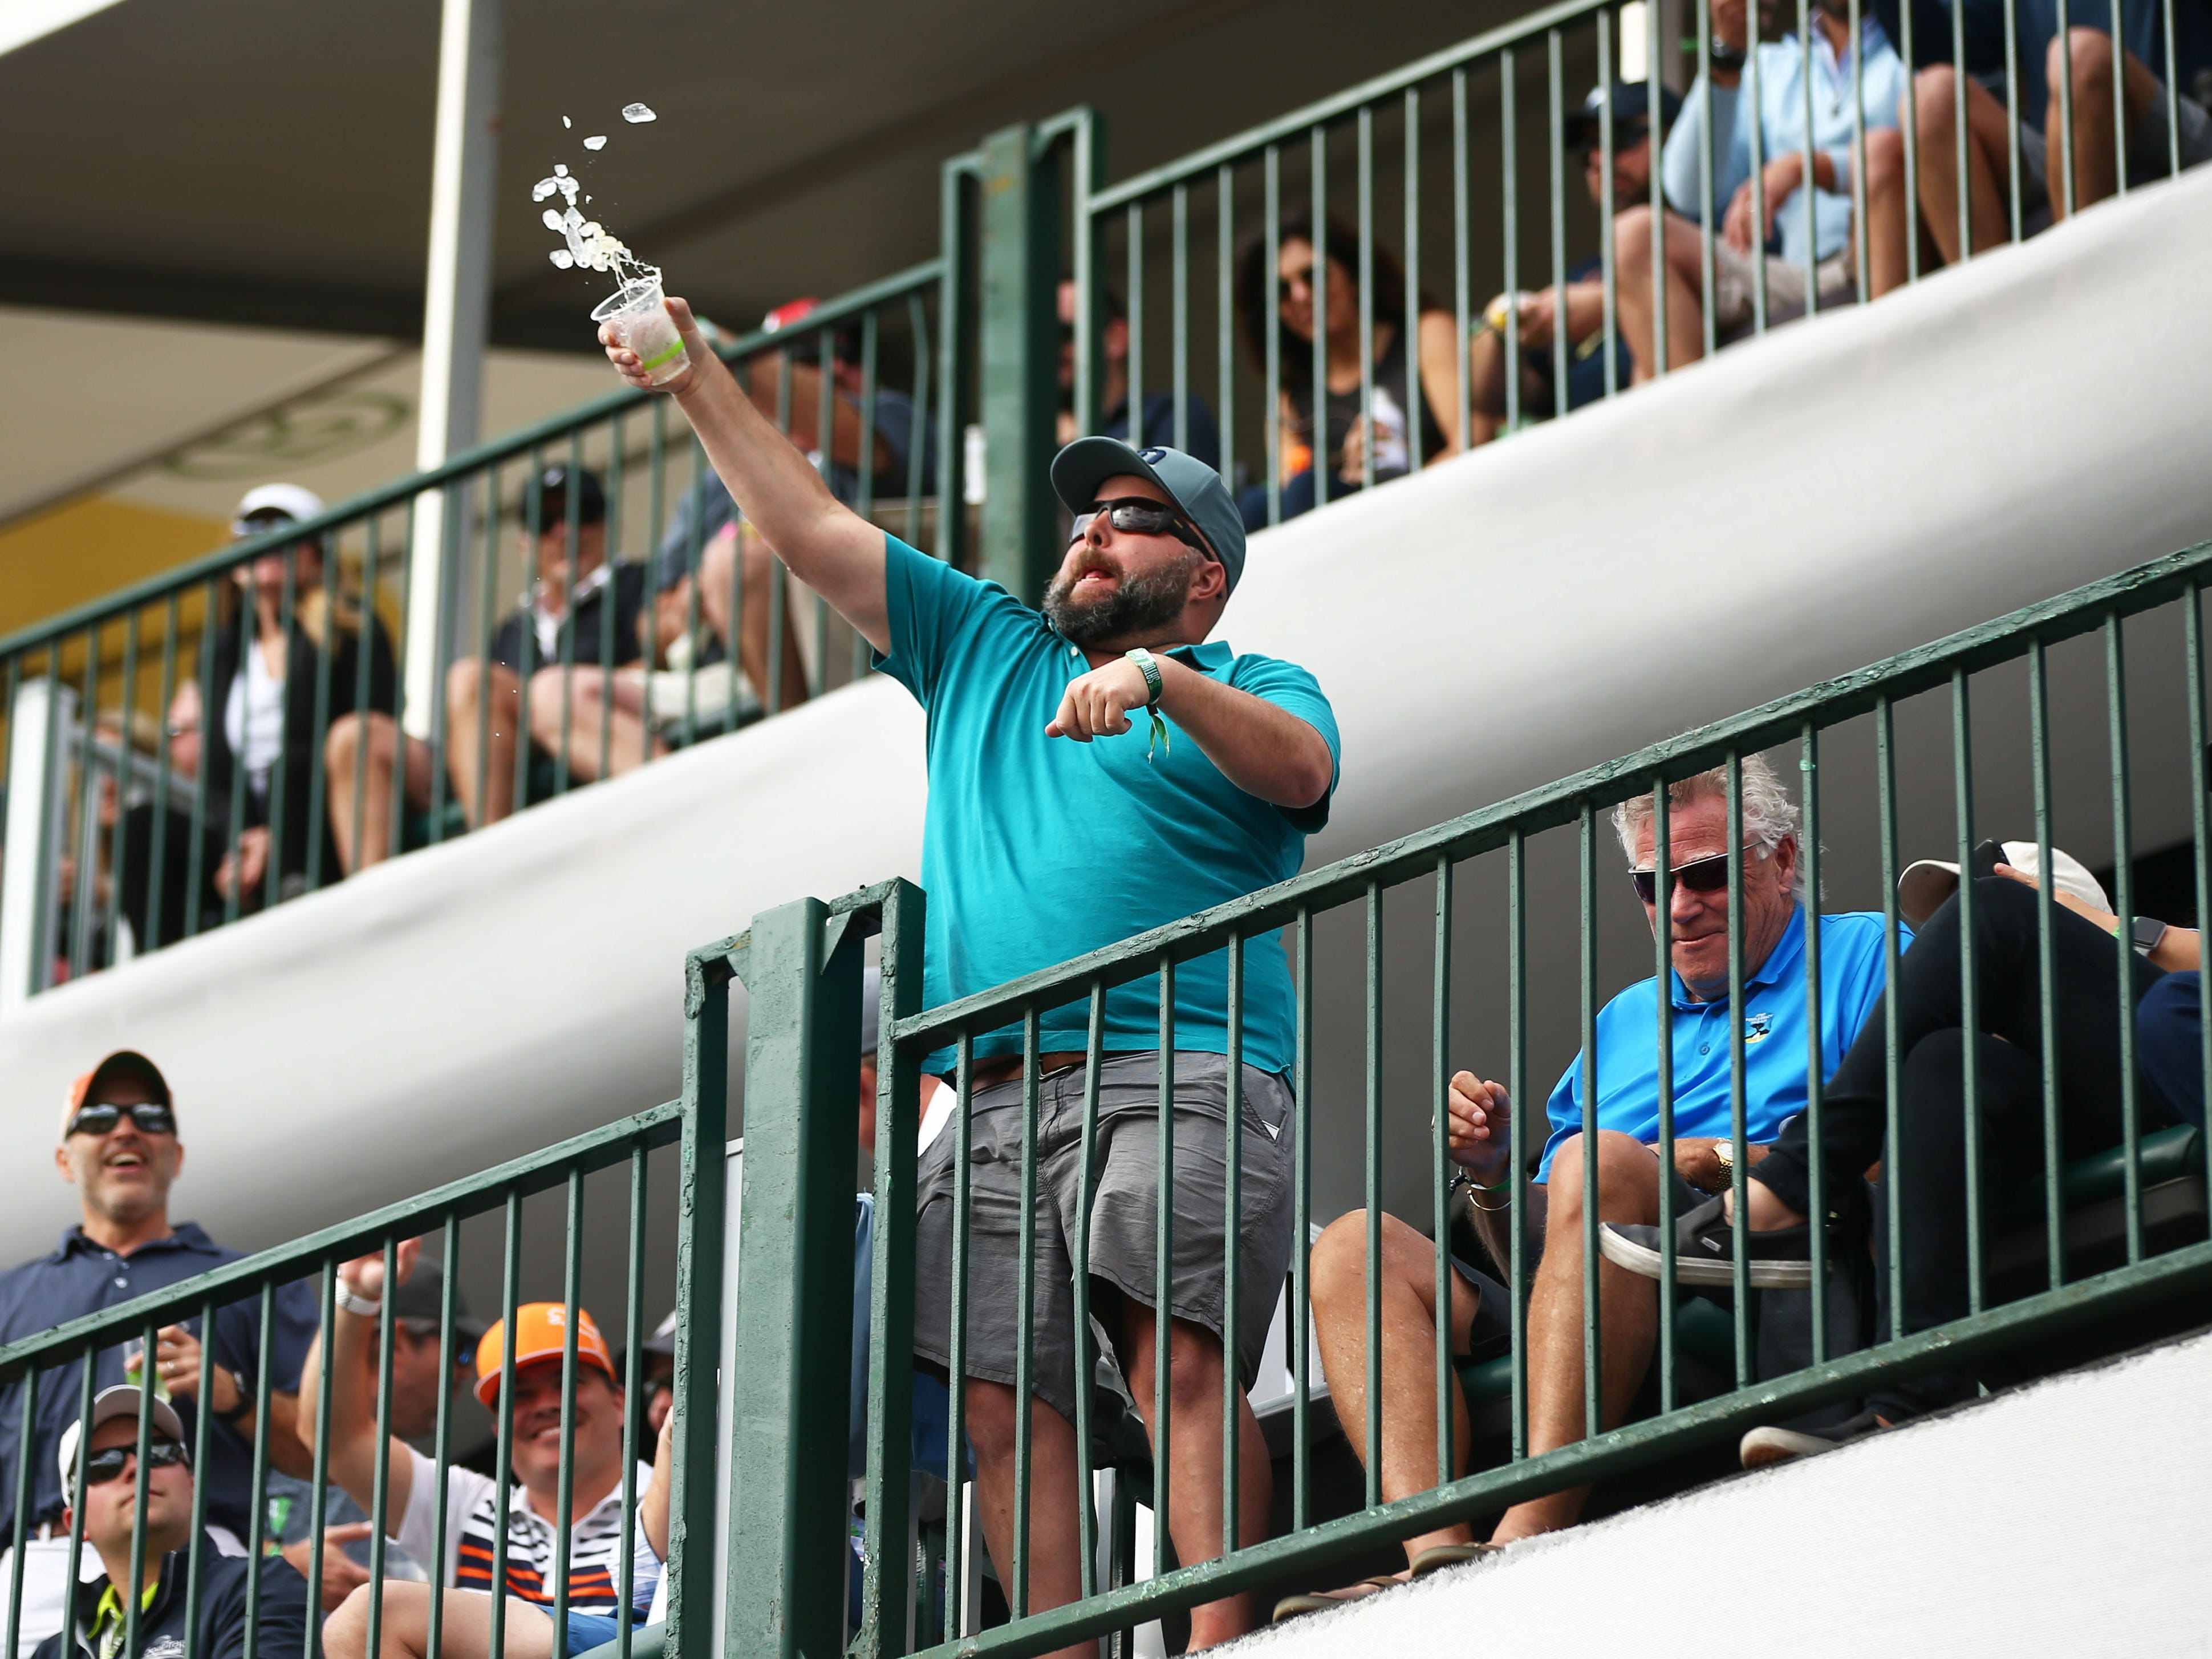 A spectator tosses his ice into the crowd below on the 16th hole during third round action on Feb. 2 during the Waste Management Phoenix Open at the TPC Scottsdale Stadium Course.